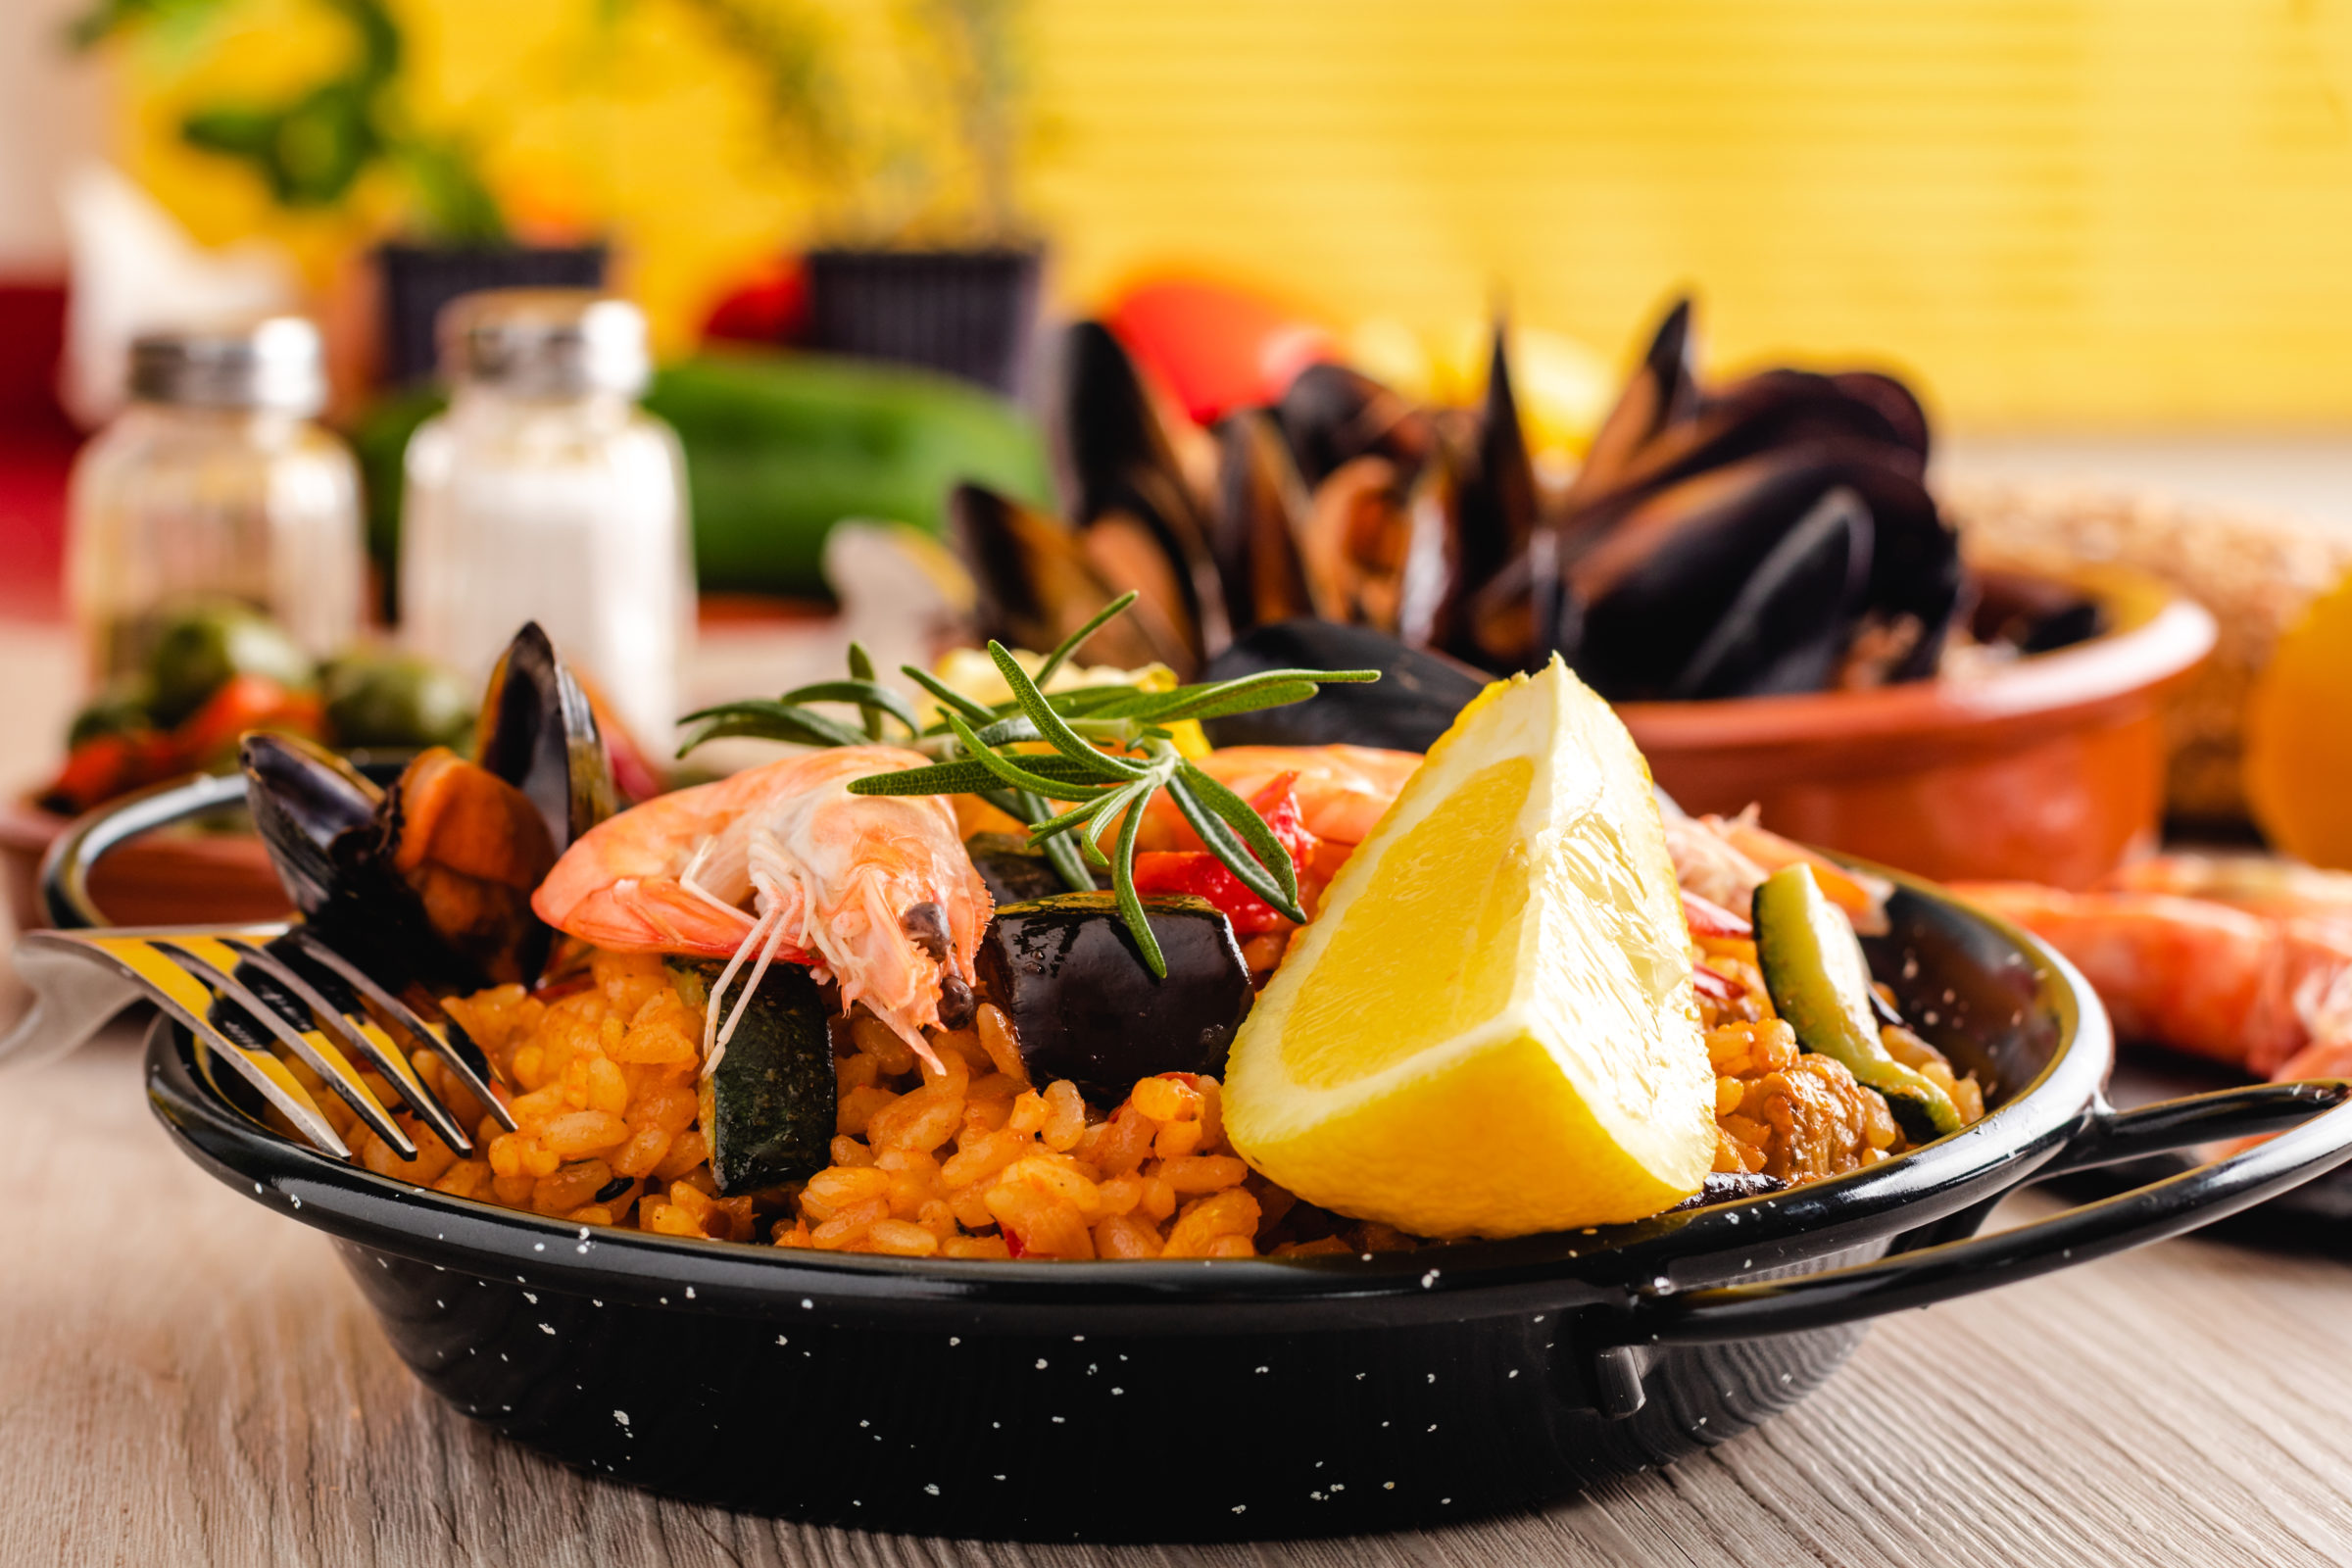 traditional spanish paella with seafood 87XM2P8